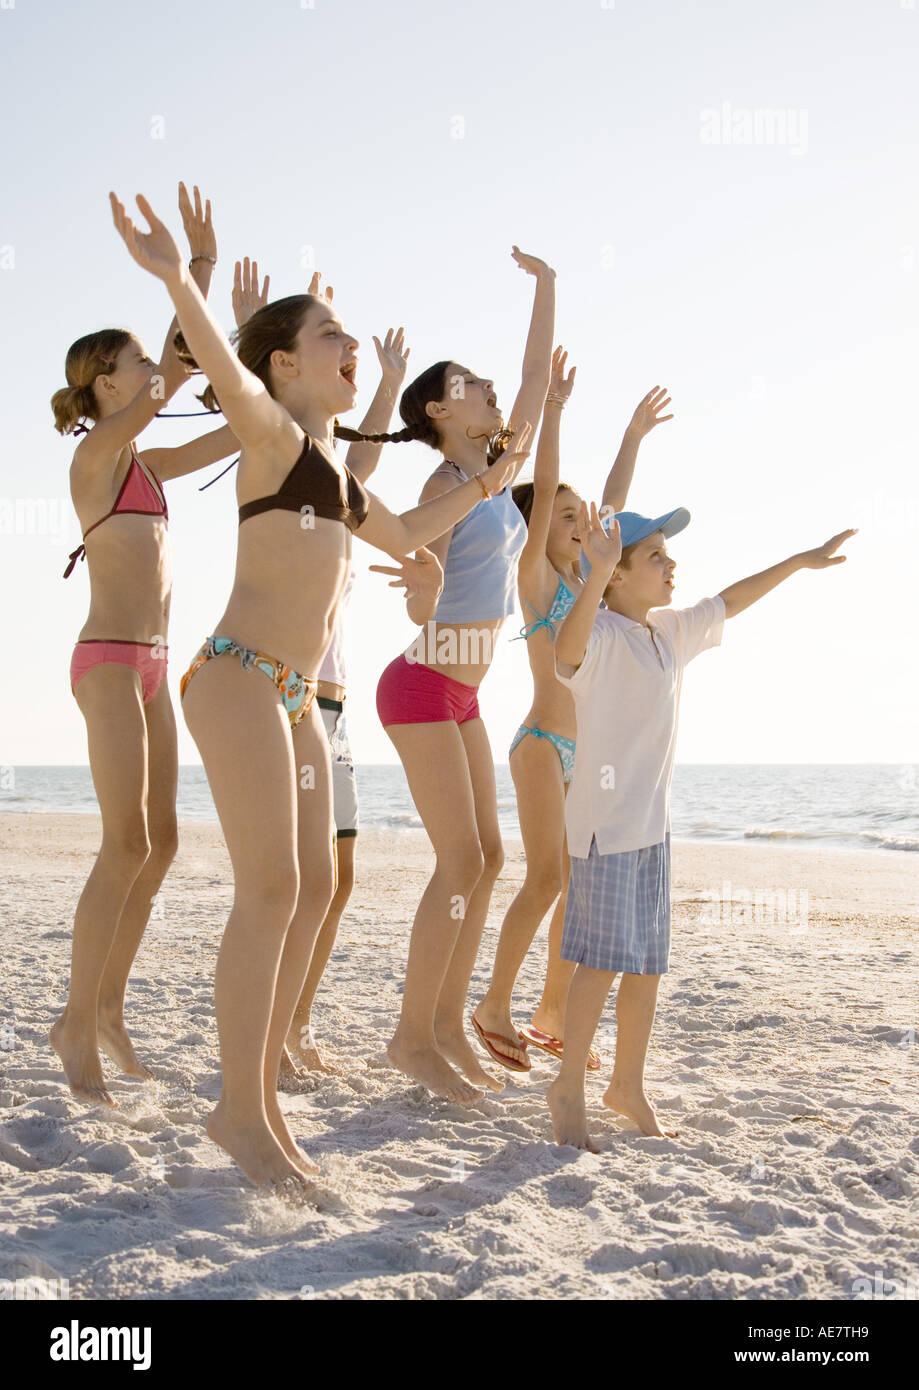 Group of kids jumping and waving on beach - Stock Image